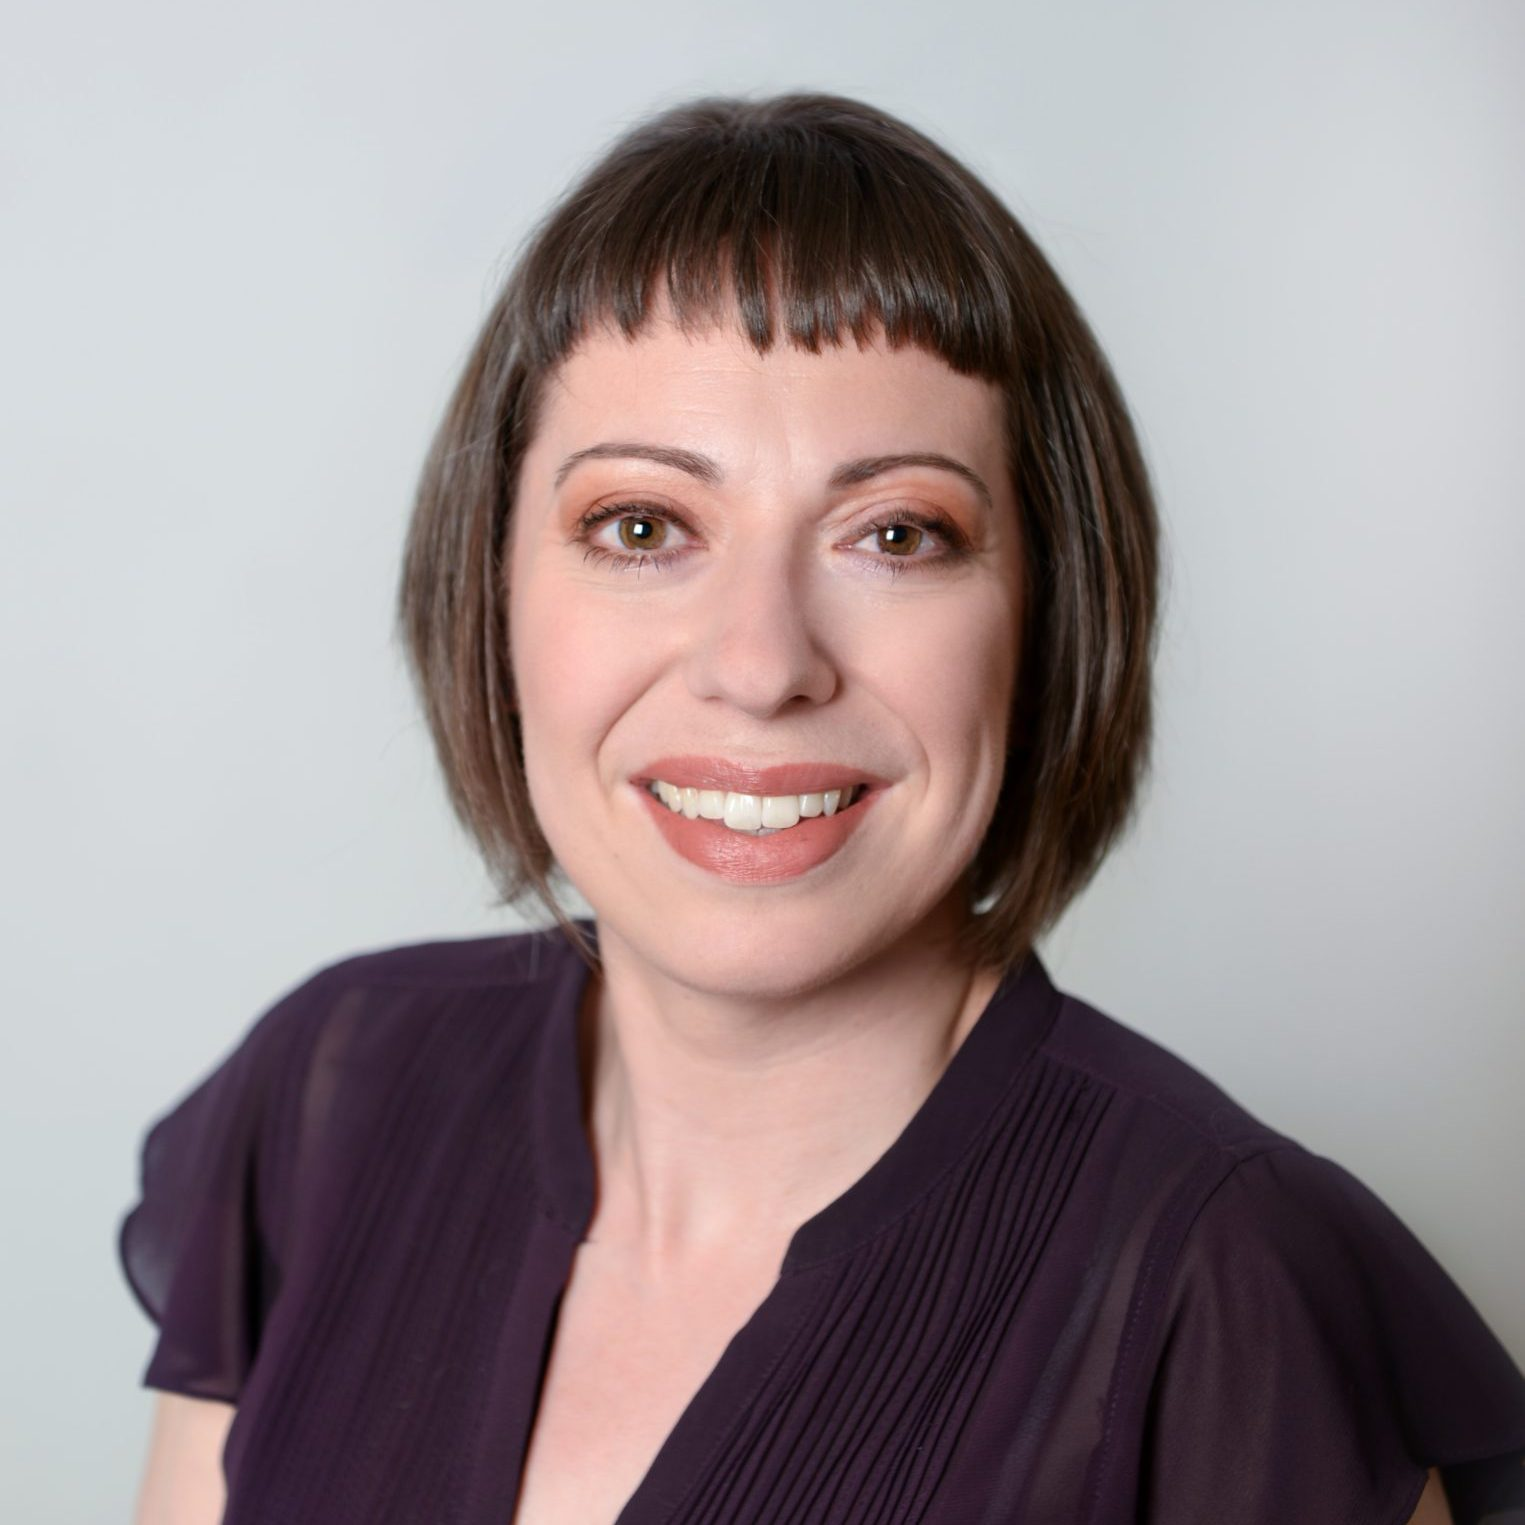 Our team member Karla Policelli, B.A., LL.B, LL.L., Family Counsel, Mediator